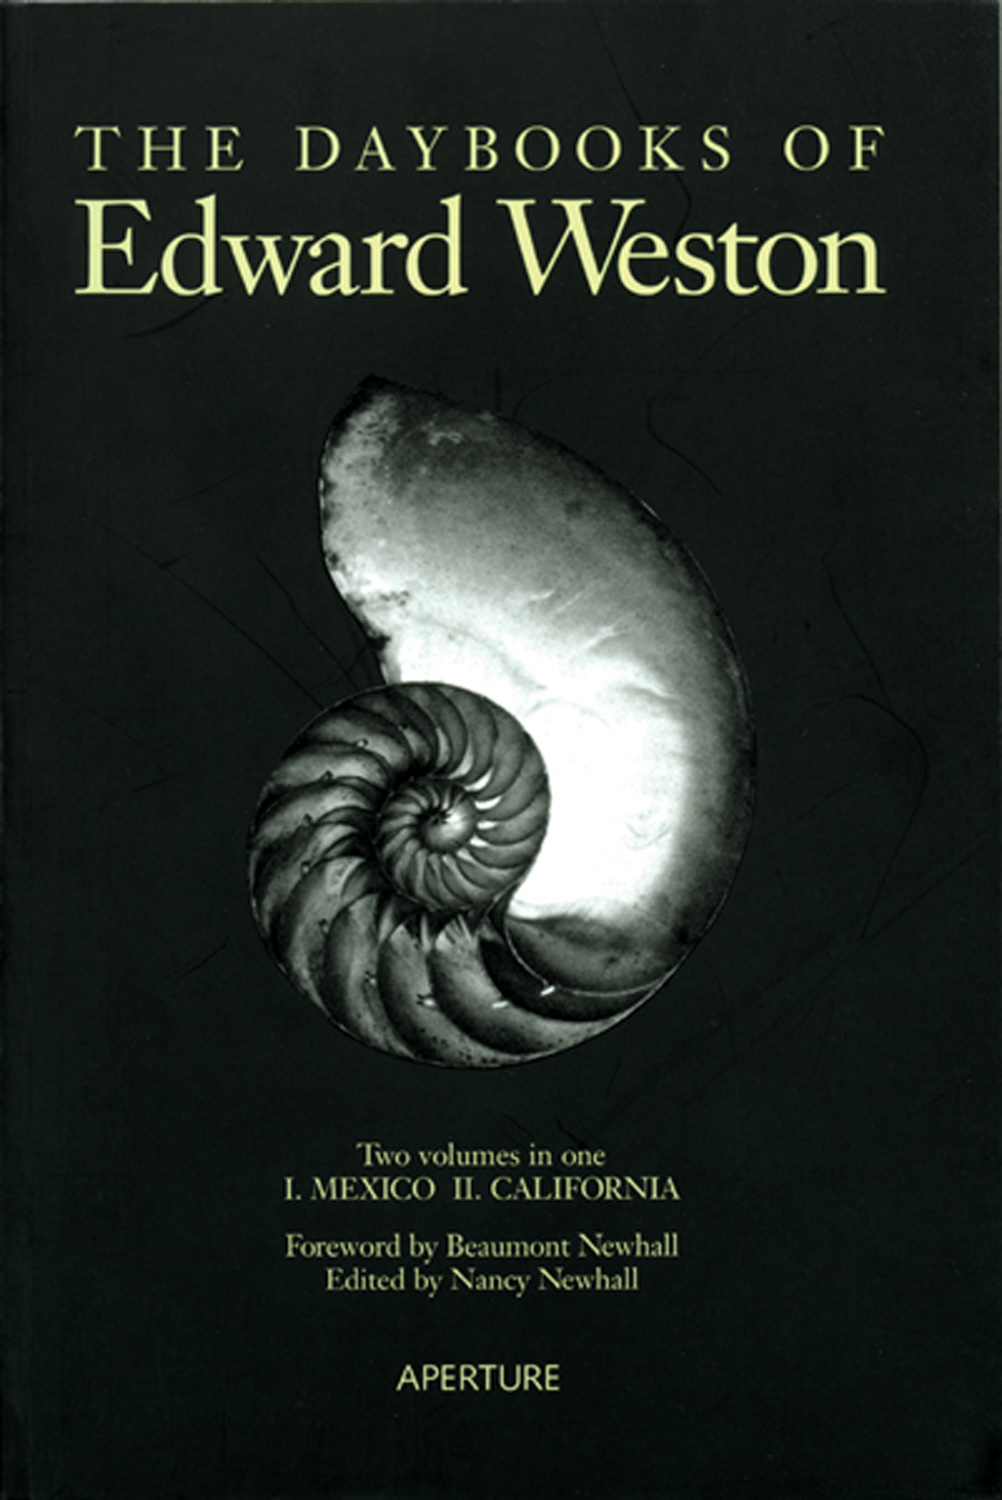 Edward Weston's The Daybooks of Edward Weston, Vol. I, Mexico, published in 1973.                                The book contains more than 15 years of the renowned photographer's journals, providing insight into his personal struggles in life and art.